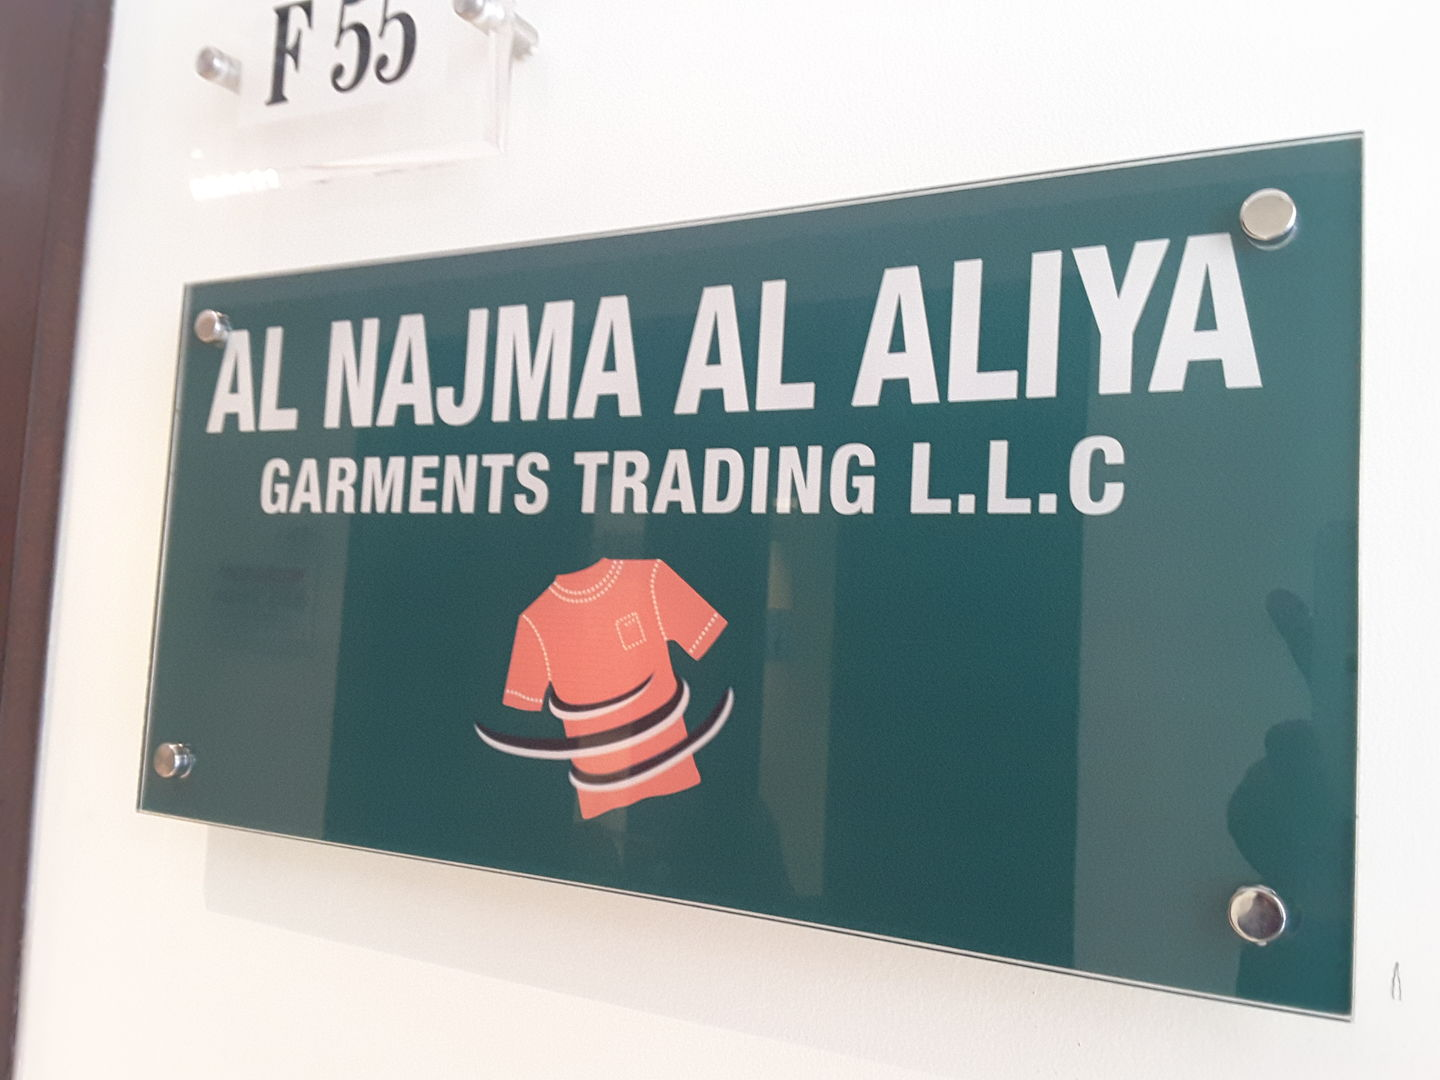 HiDubai-business-al-najma-al-aliya-garments-trading-b2b-services-distributors-wholesalers-al-quoz-3-dubai-2